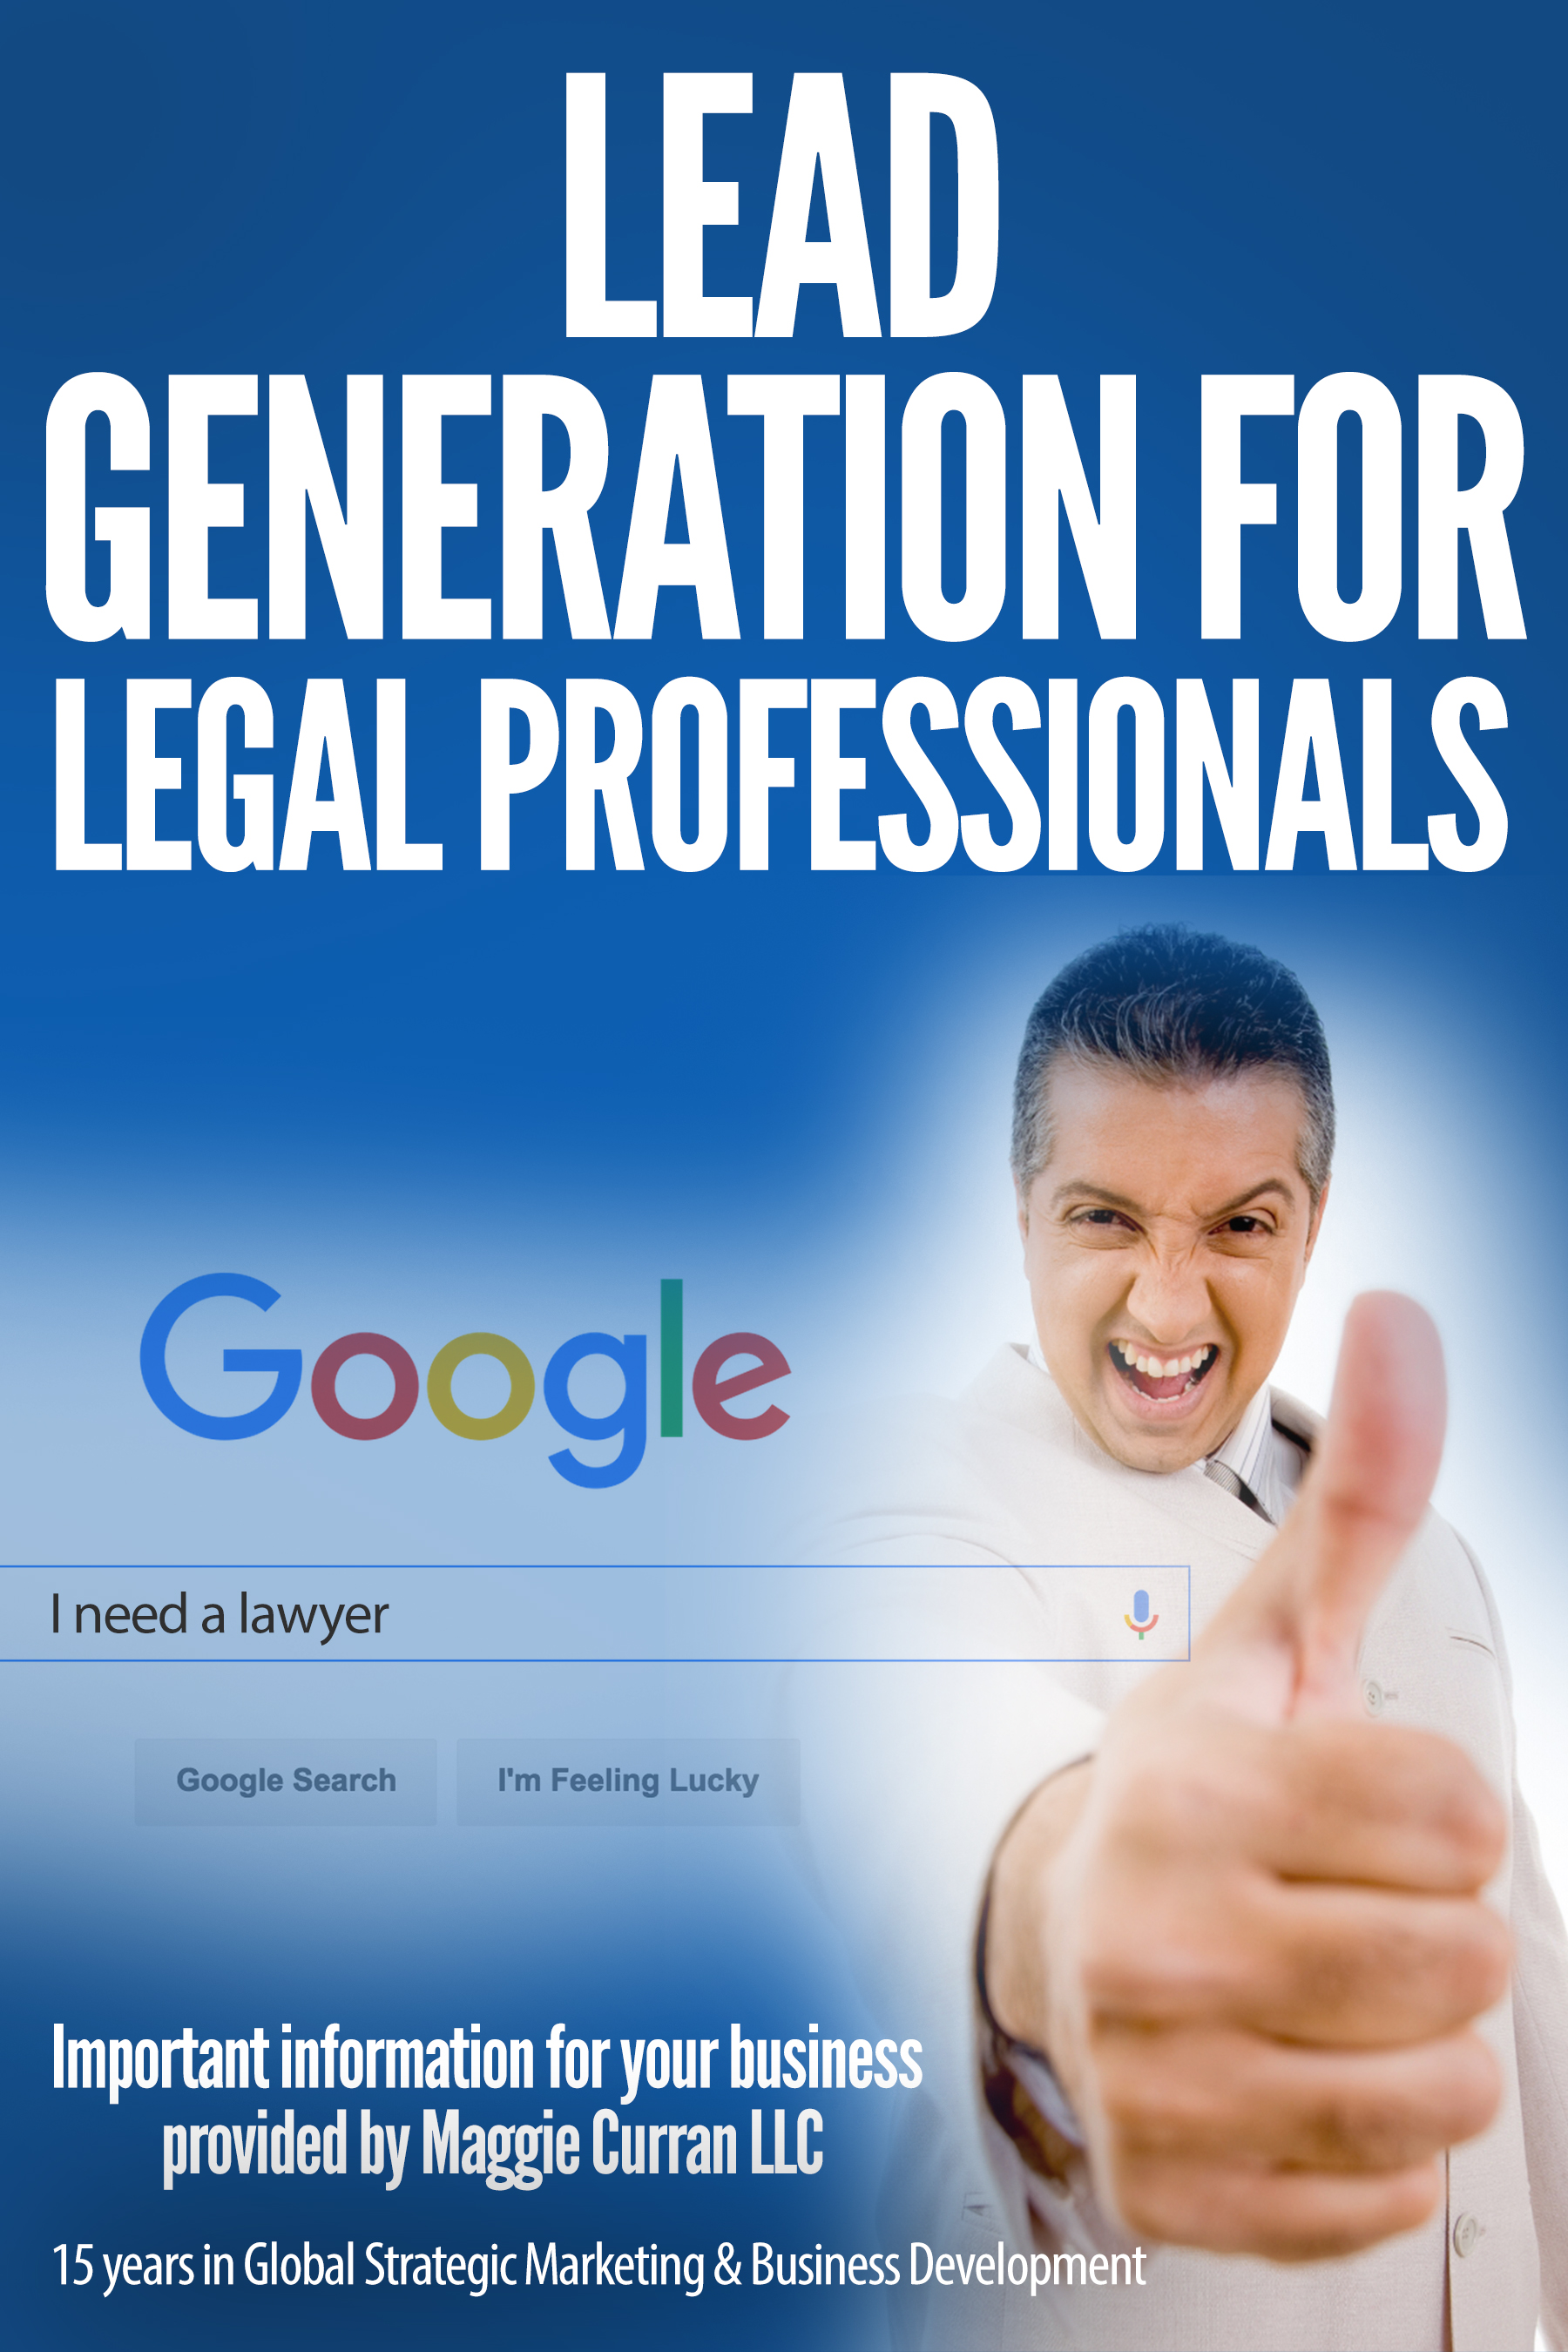 Fast Lead Generation for Attorneys & Legal Professionals